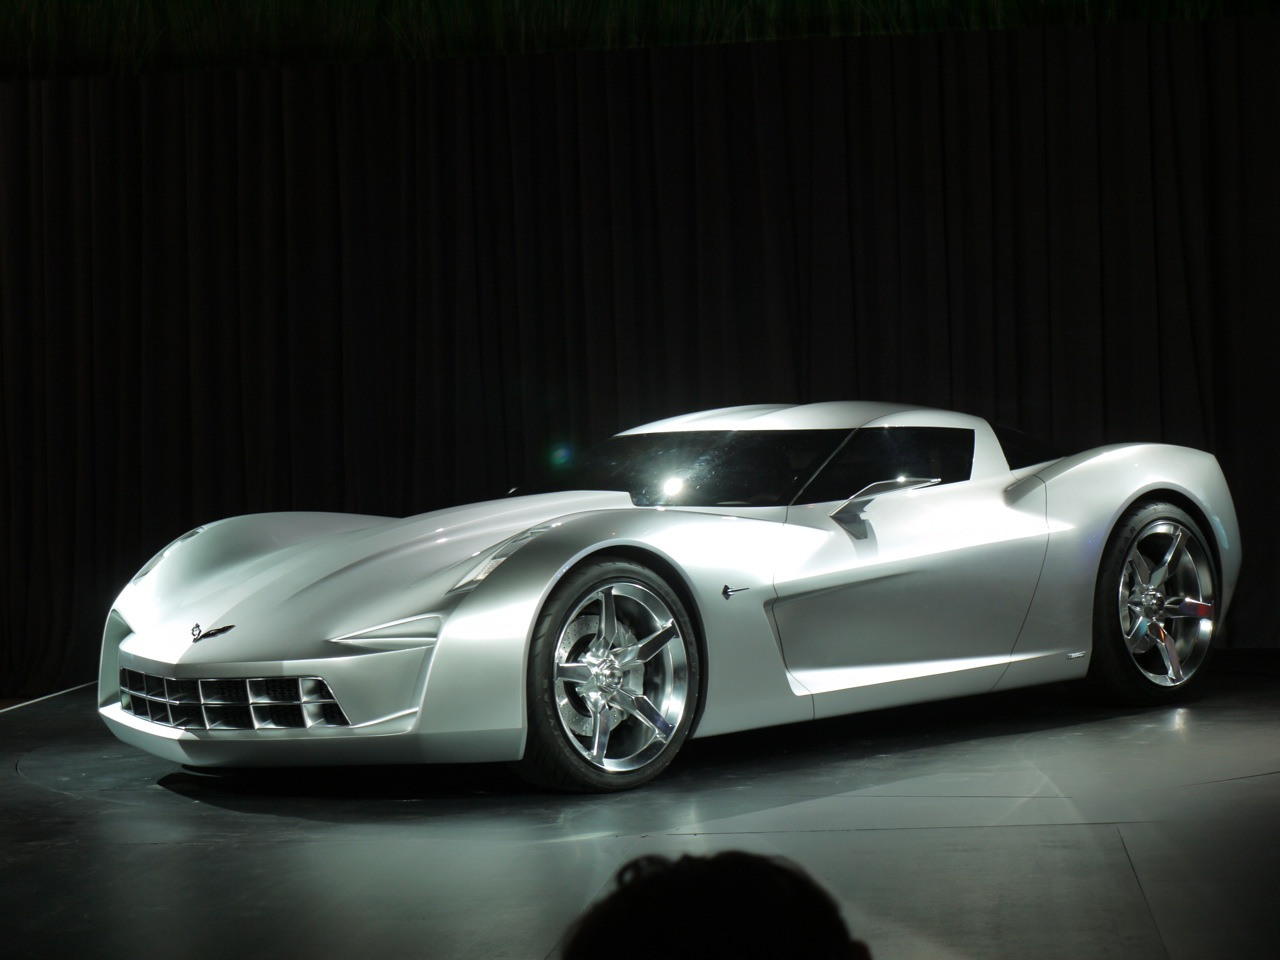 Chicago 2009: Corvette Stingray Concept LIVE Photo Gallery - Autoblog